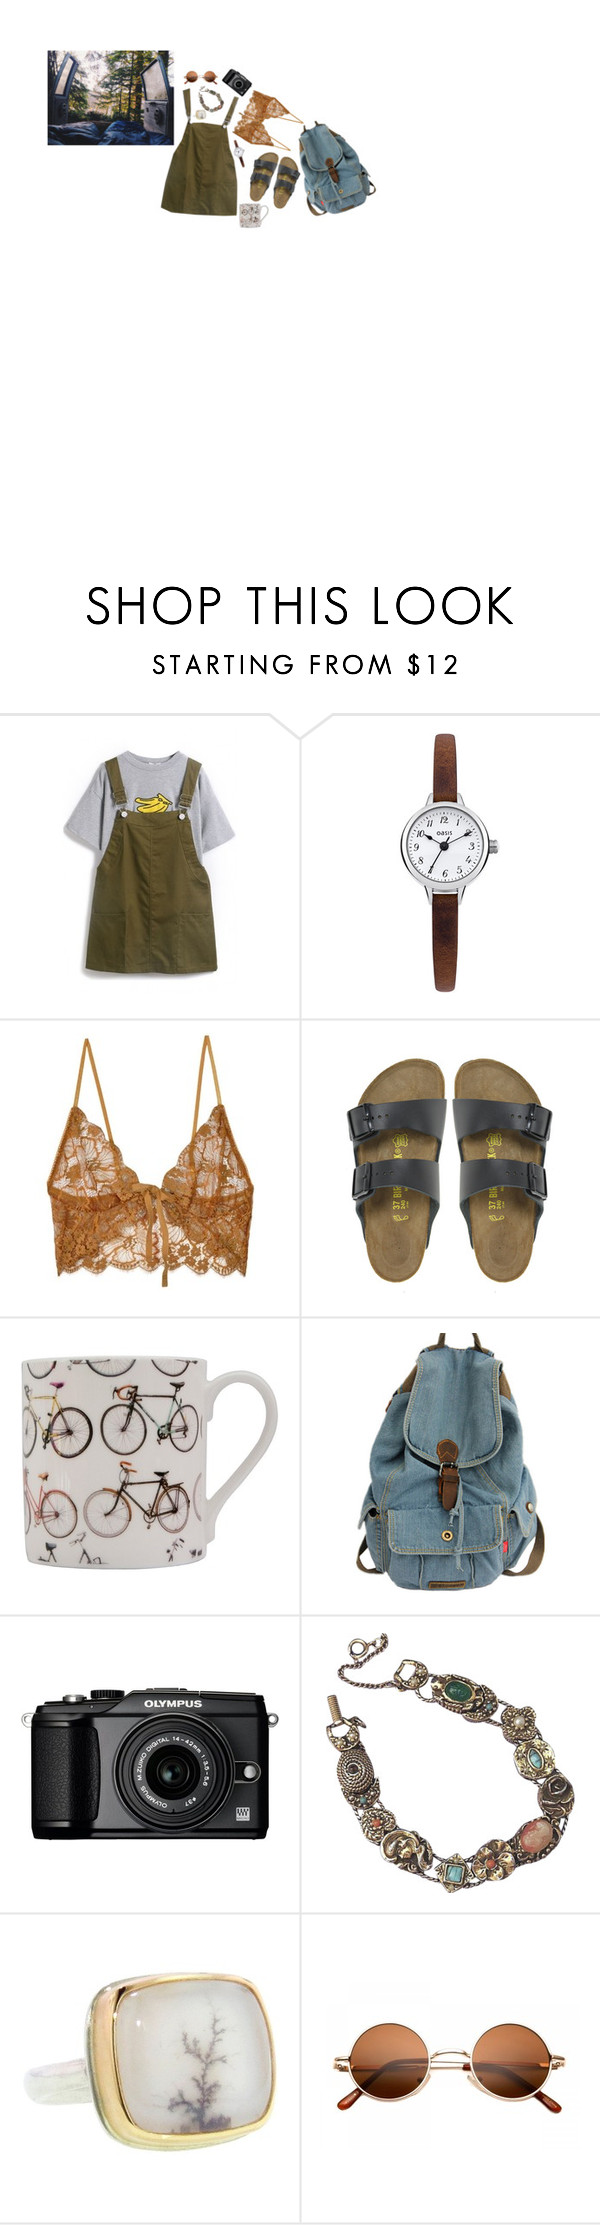 """""""at the end of the day..."""" by greenisthenewgirl ❤ liked on Polyvore featuring Retrò, Oasis, For Love & Lemons, Birkenstock, Ella Doran, Olympus and Jamie Joseph"""